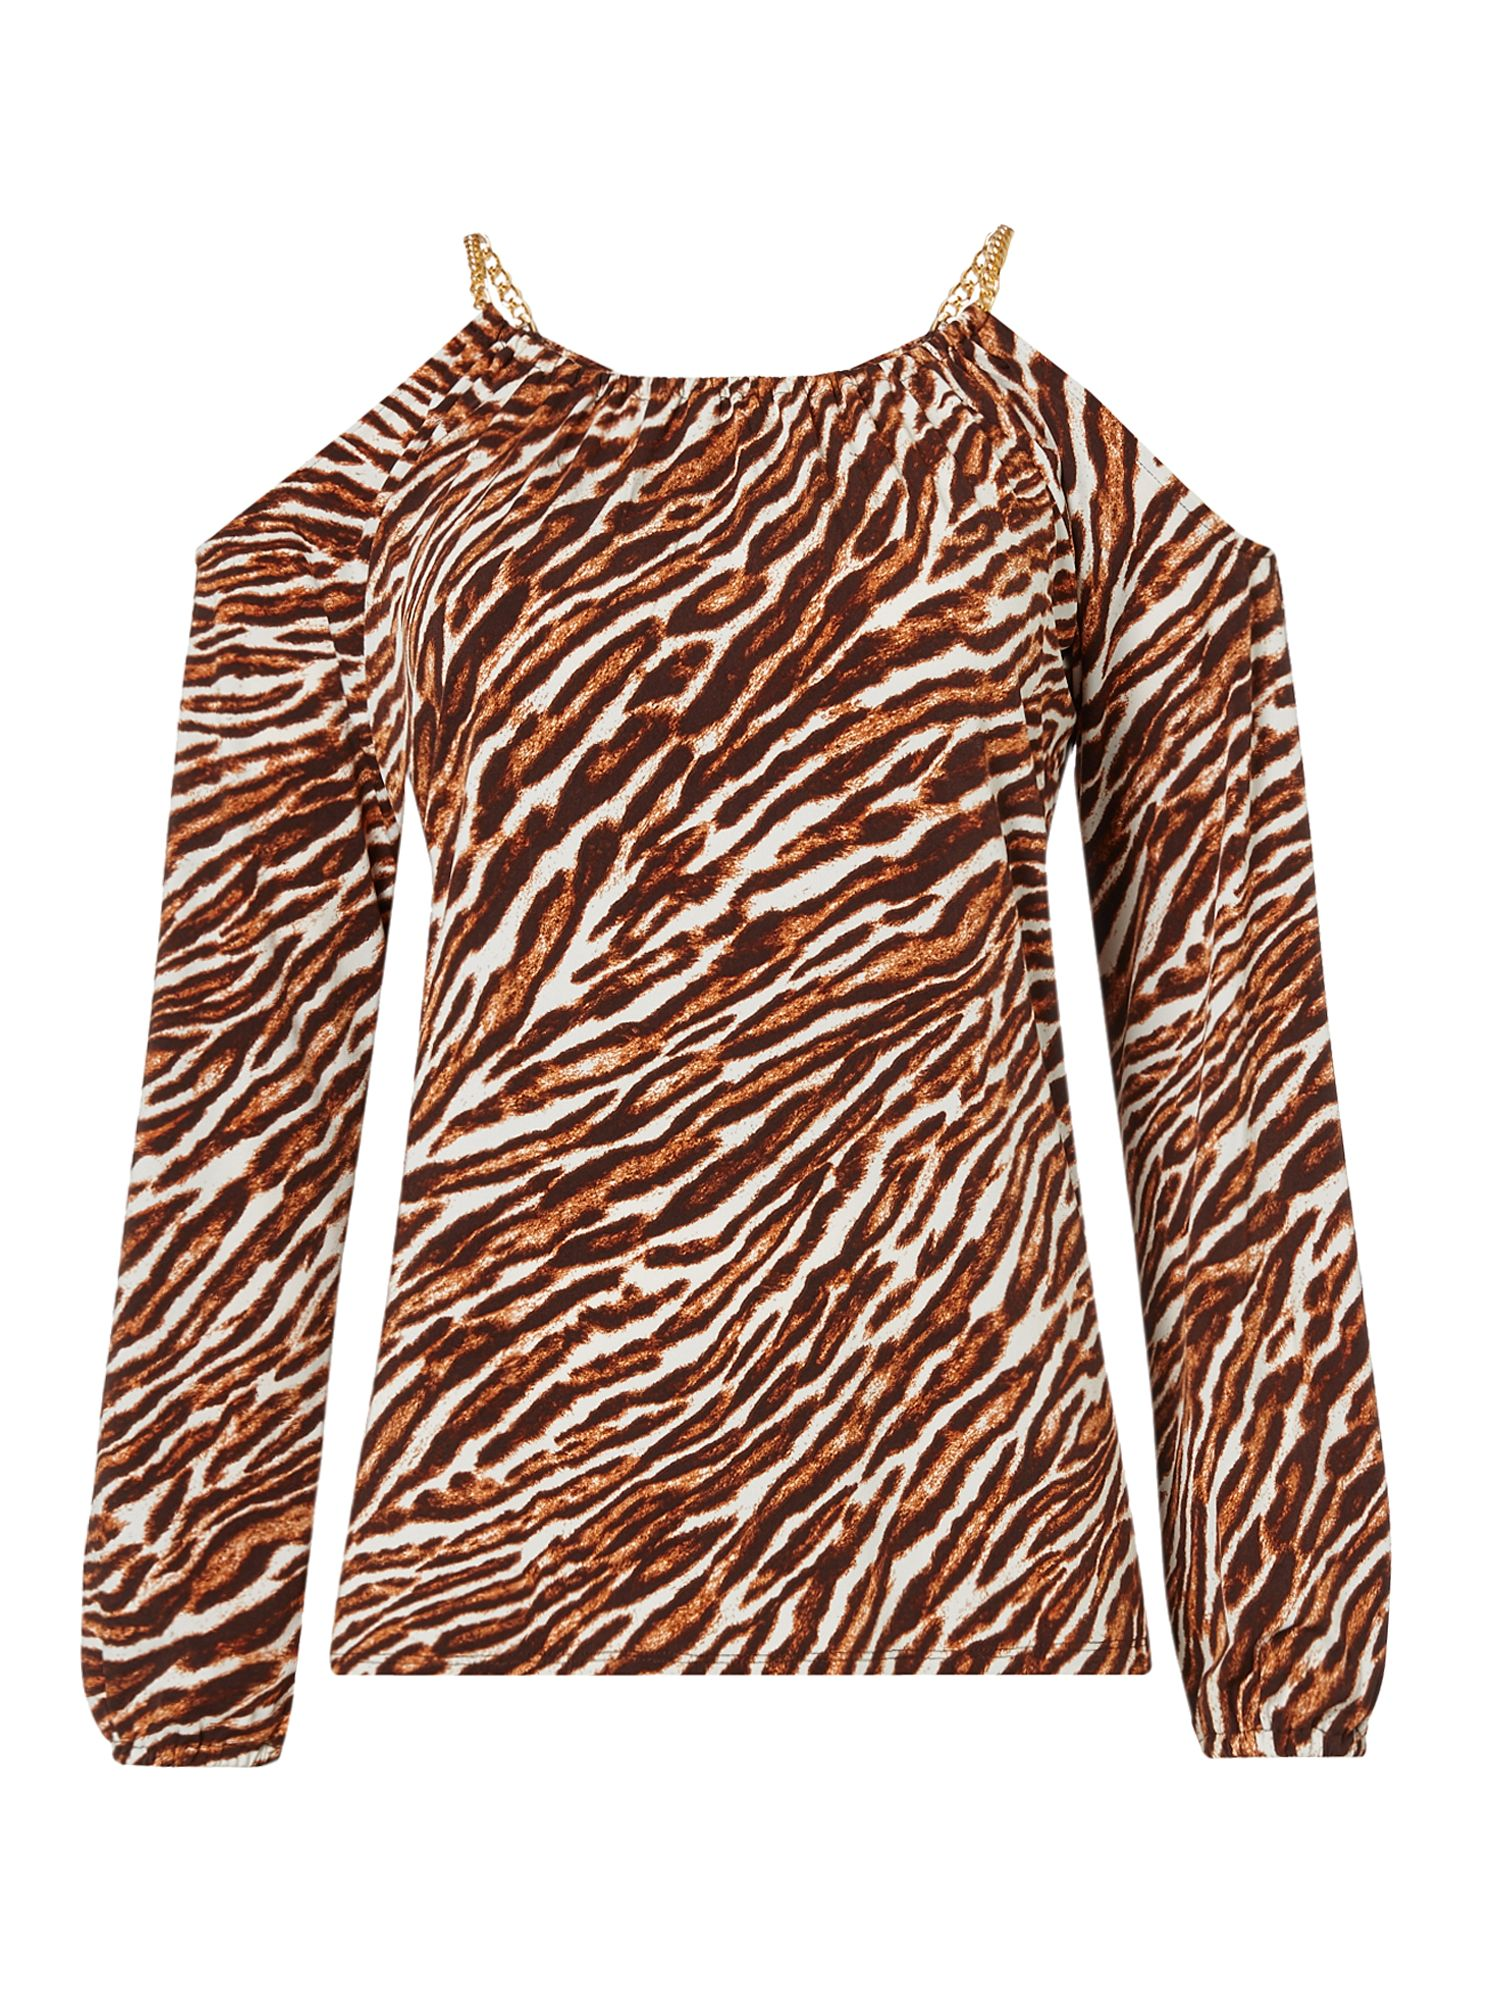 Michael Kors Exclusive safari cold shoulder top, Brown